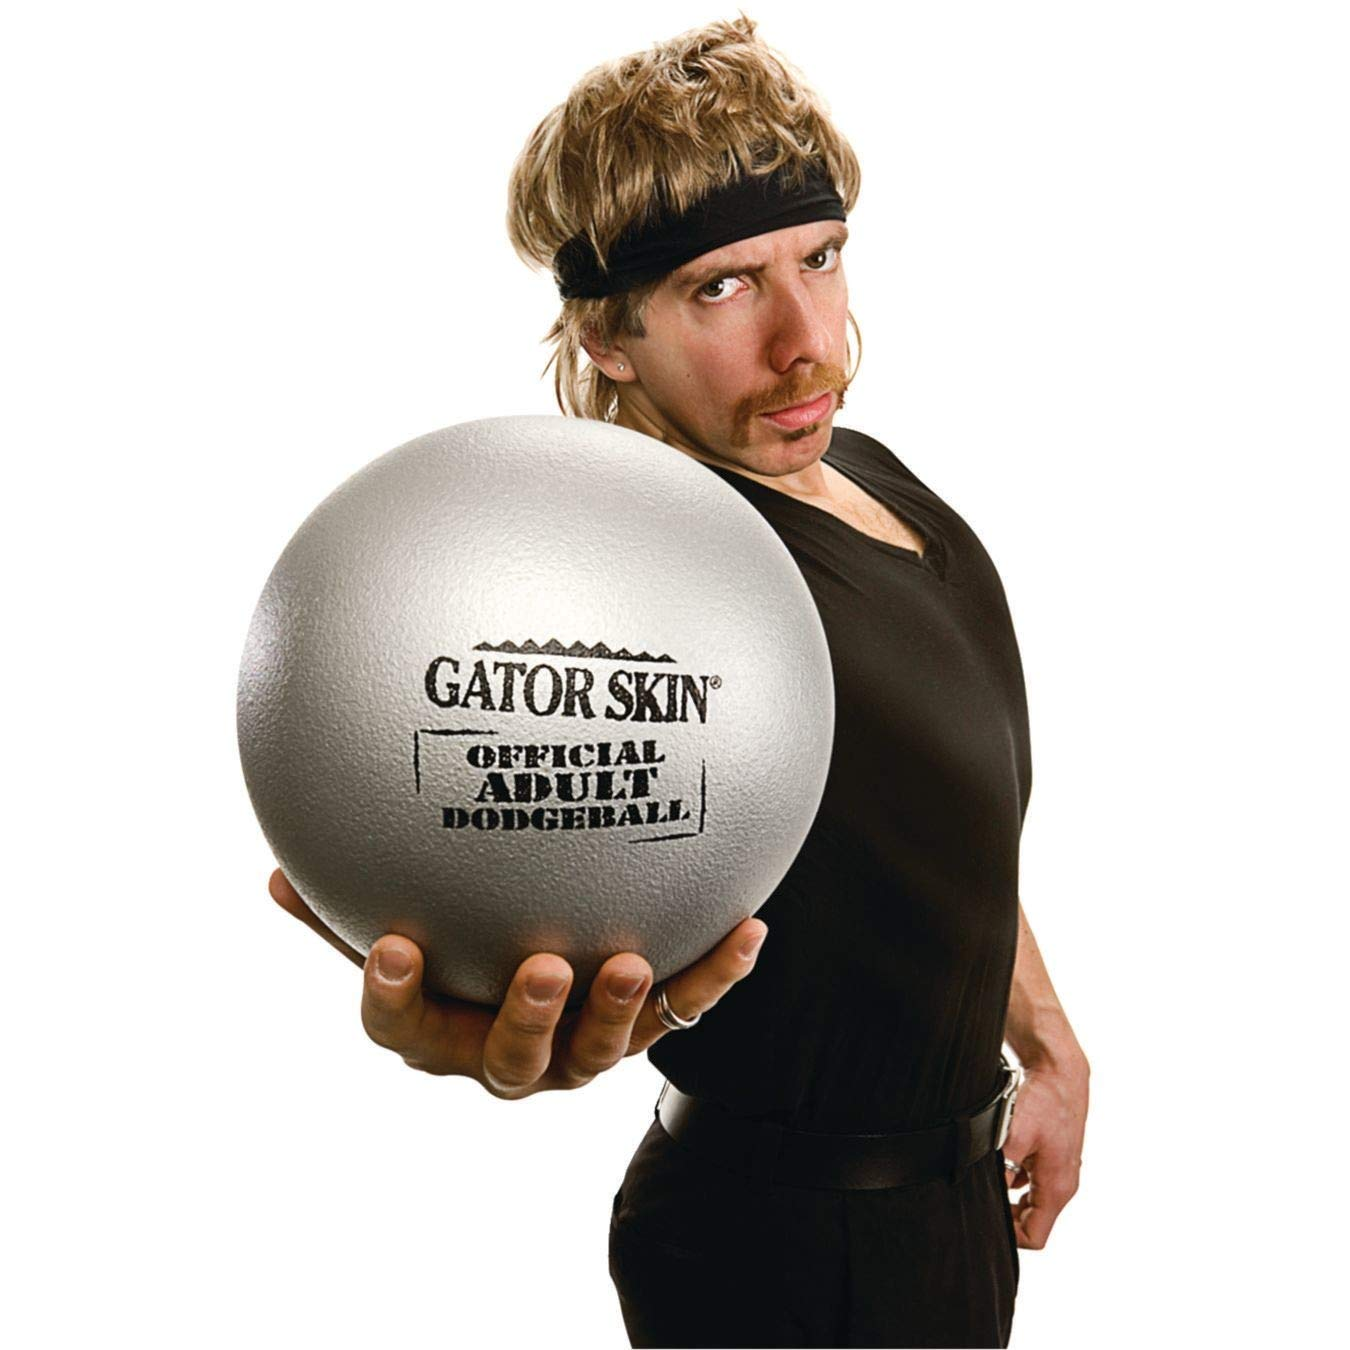 Gator Skin Official Adult Dodgeball by S&S Worldwide